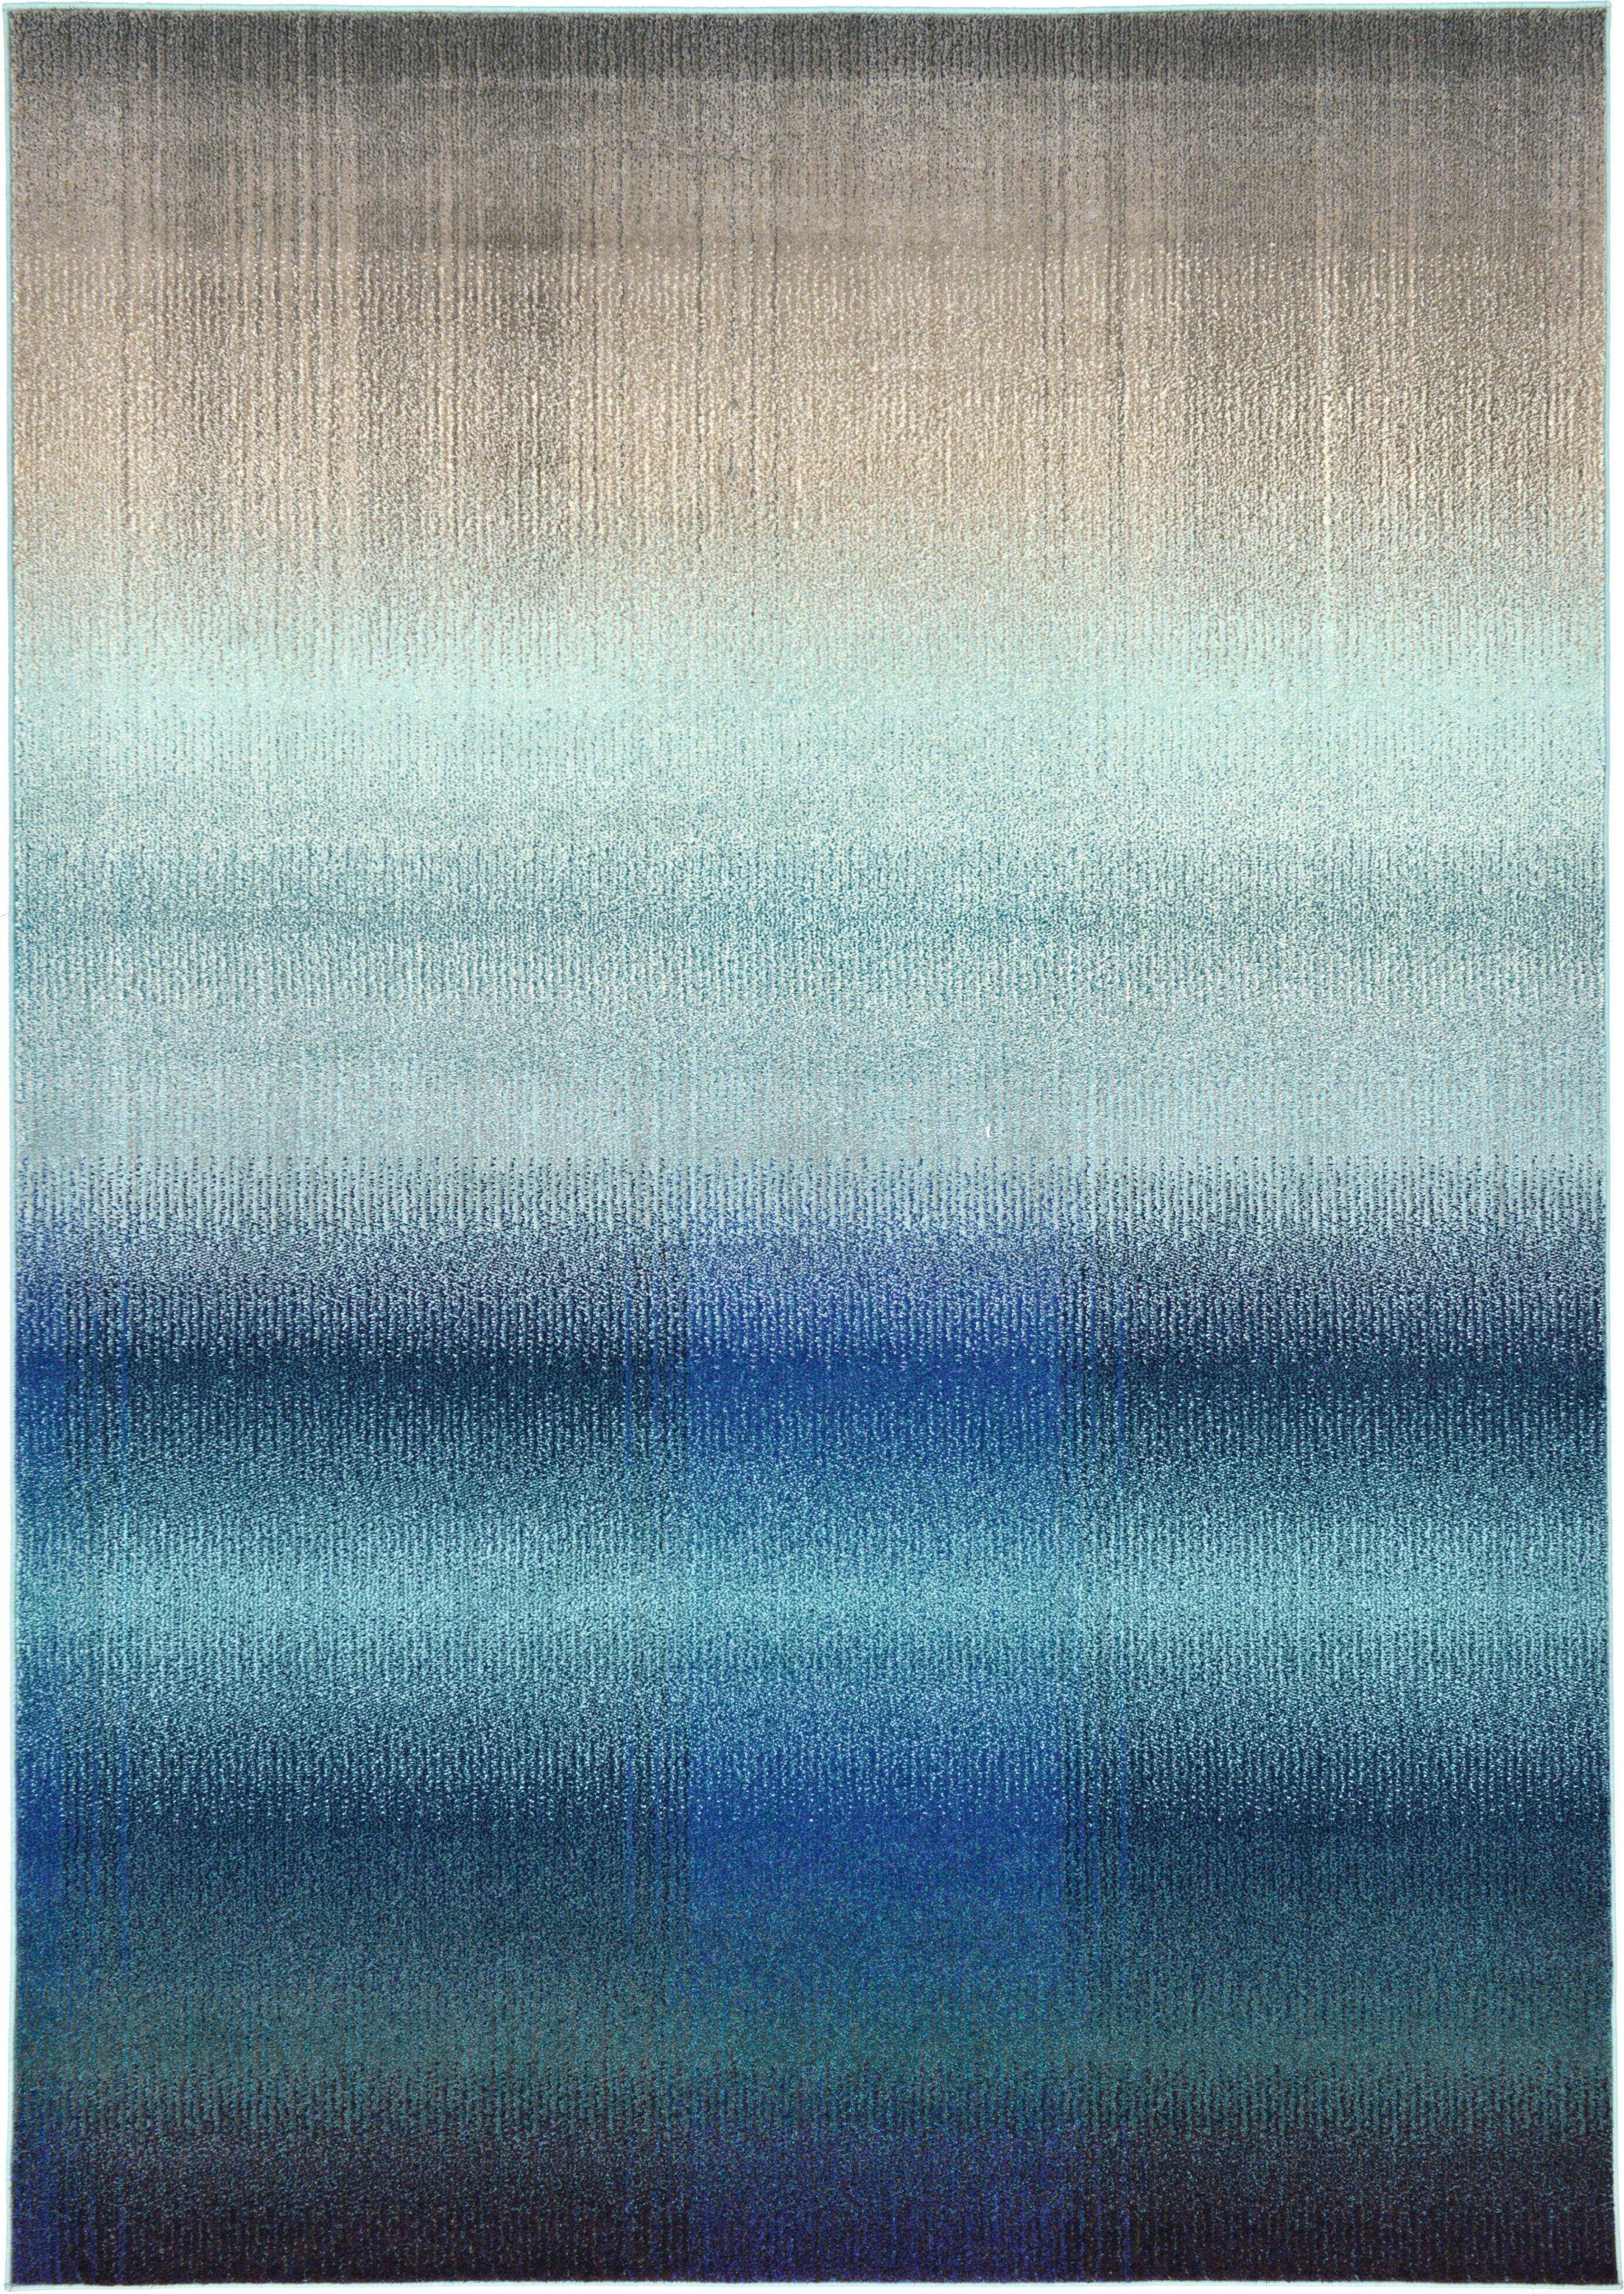 Applecroft Blue Fade Area Rug Rug Size: Rectangle 7.1' x 10'